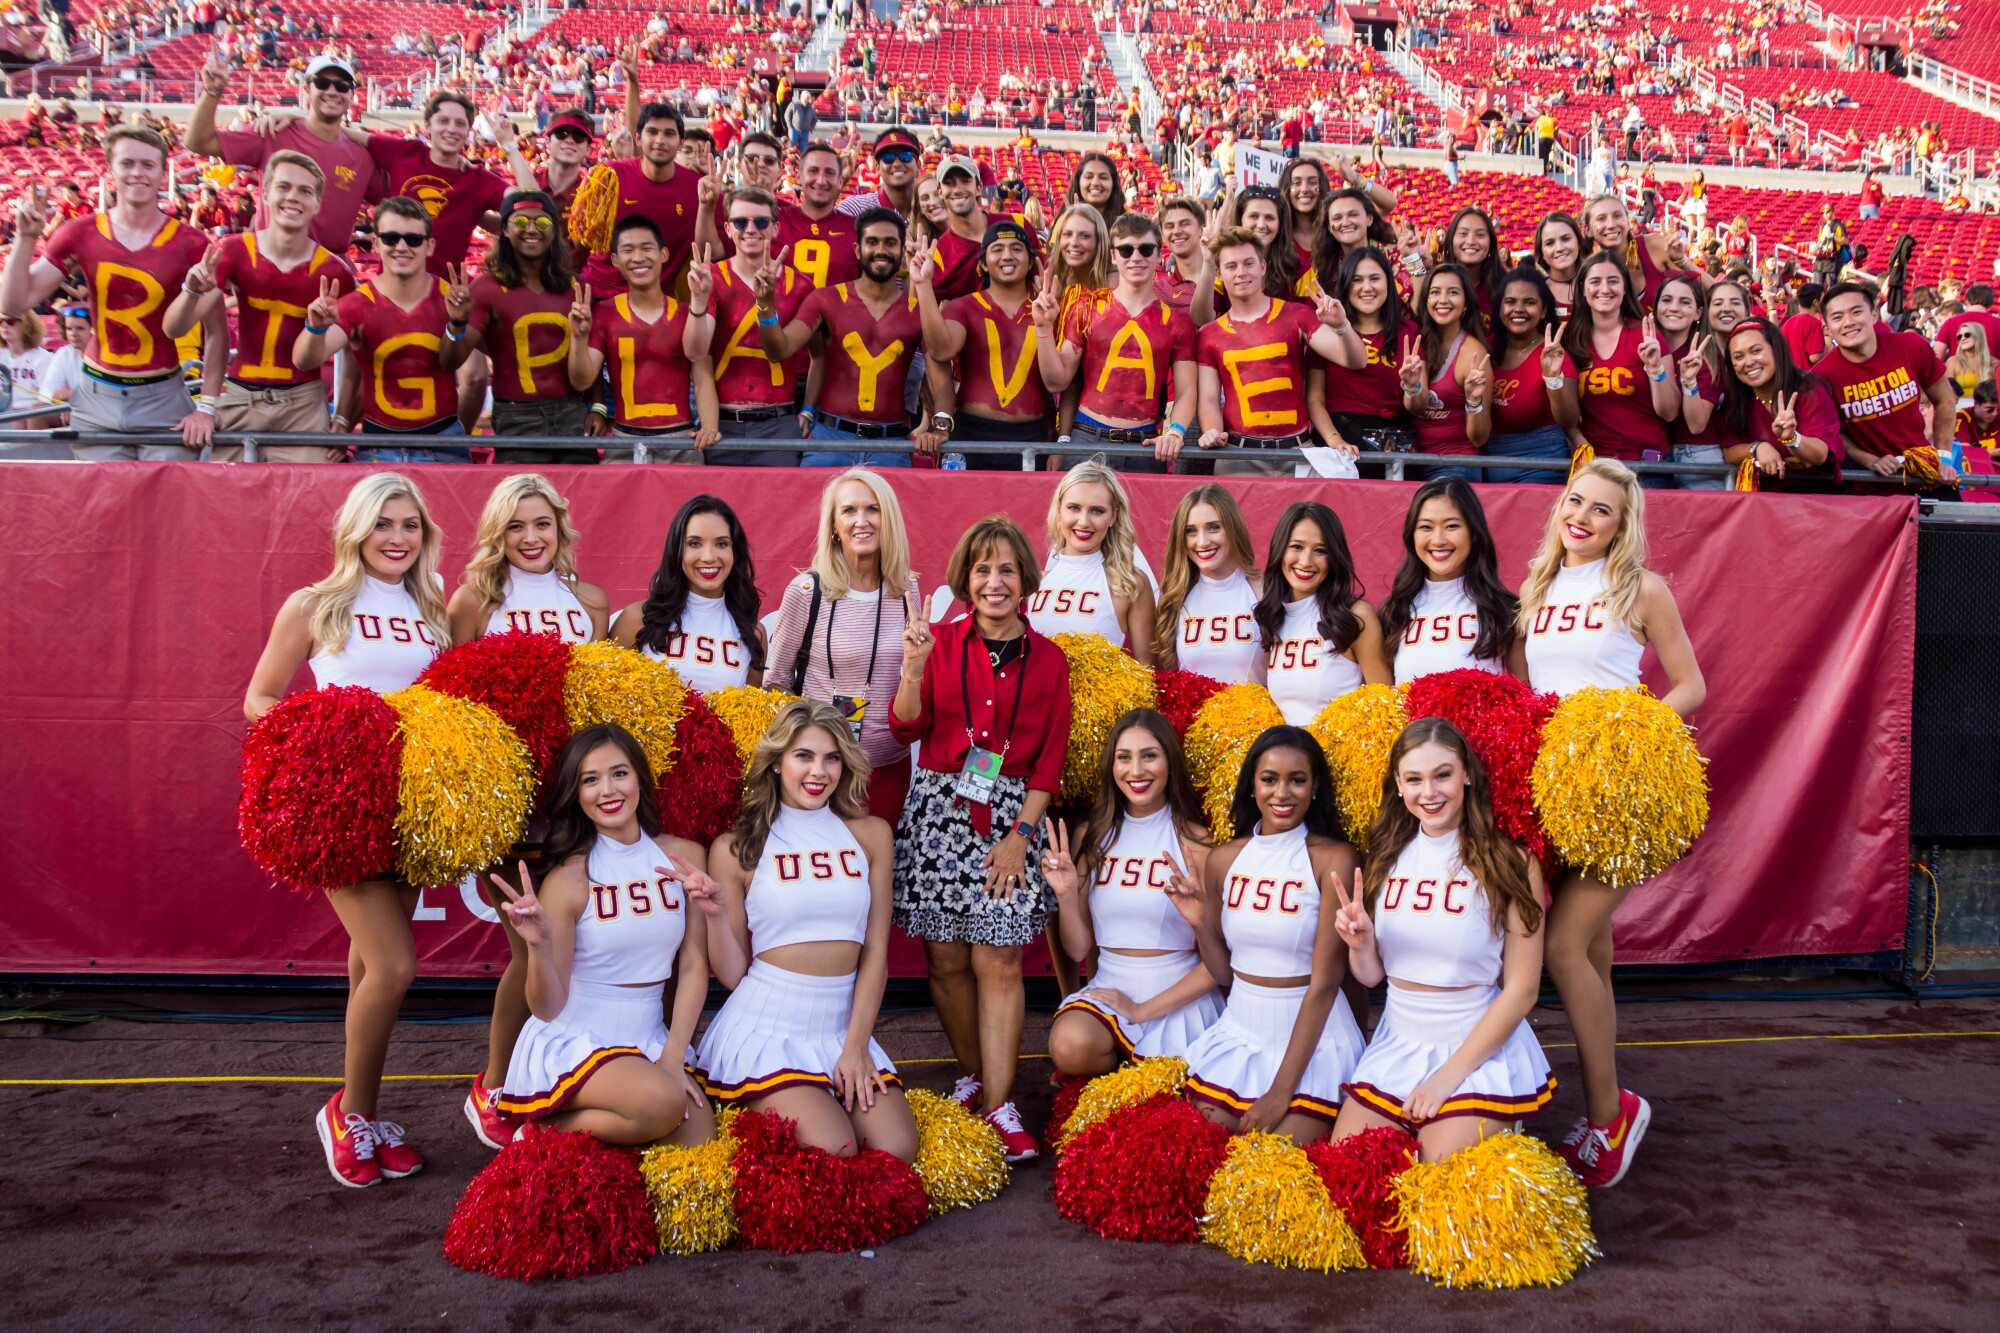 USC President Carol Folt (in red, center) poses with Lori Nelson (pink blouse) and the USC Song Girls.